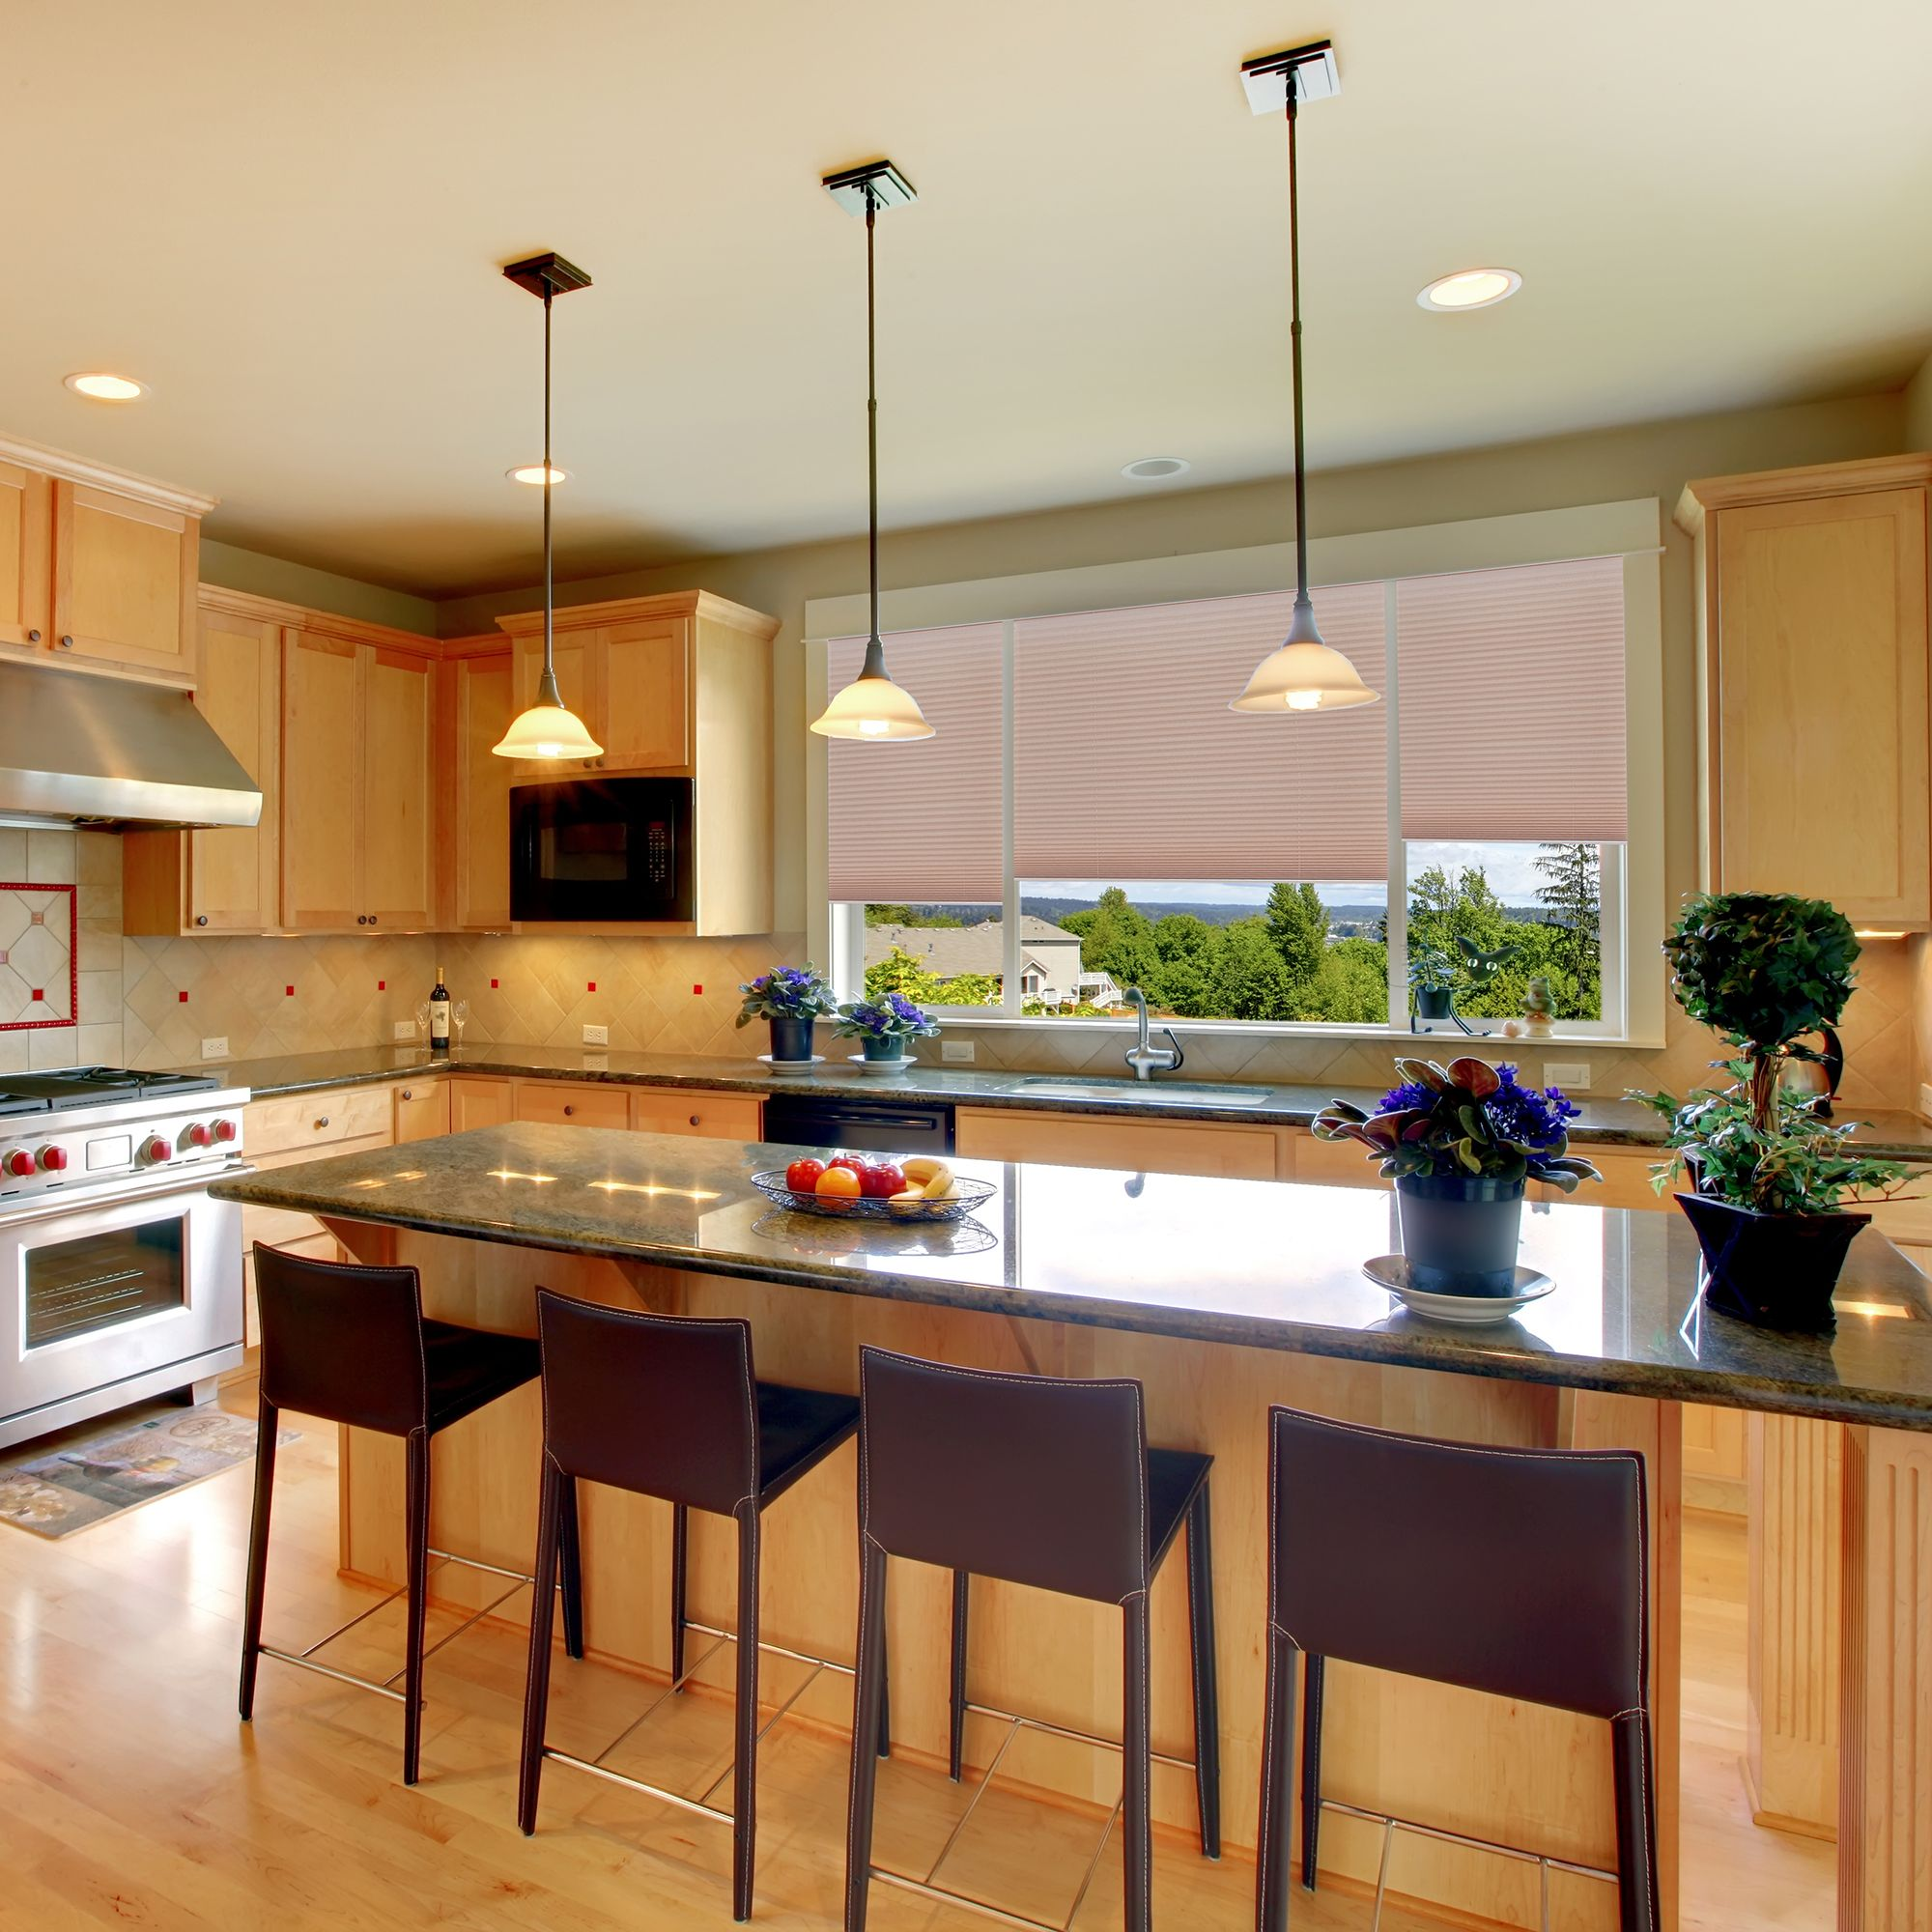 Easy Lift & Easy Lift Select   Kitchen remodel, Kitchen ...